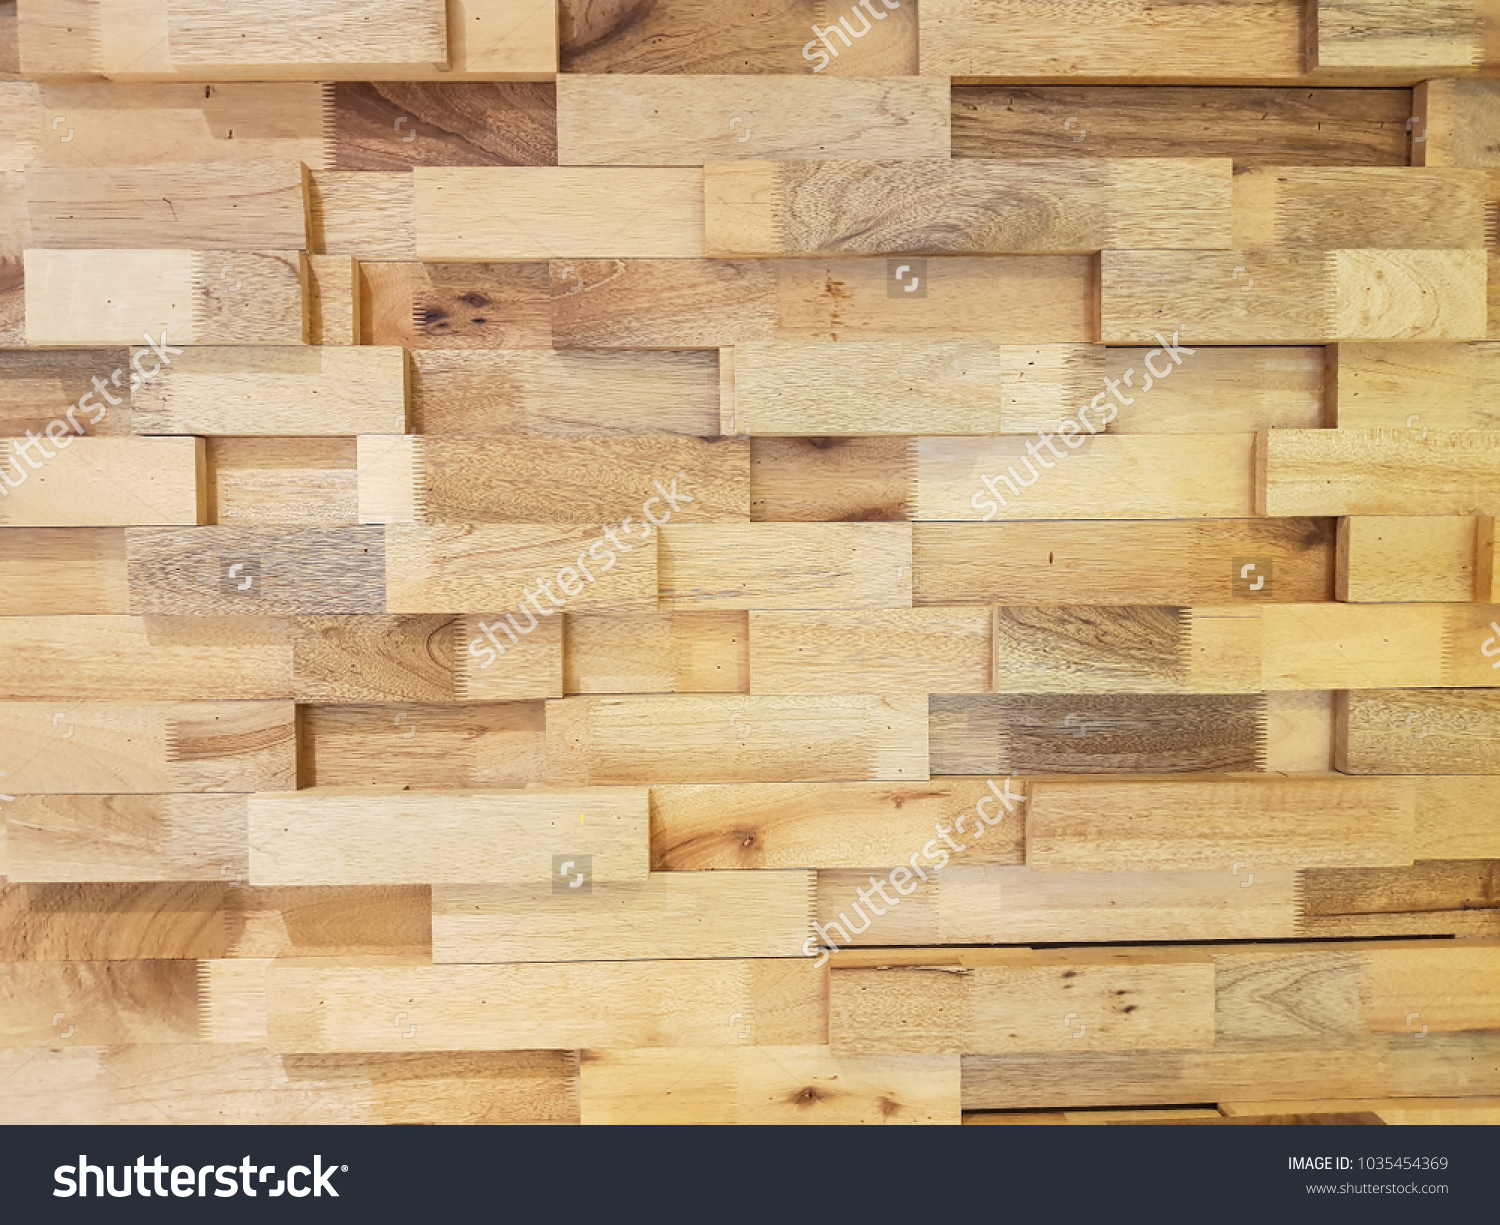 Interior wall panel pattern - seamless background - wood texture ...